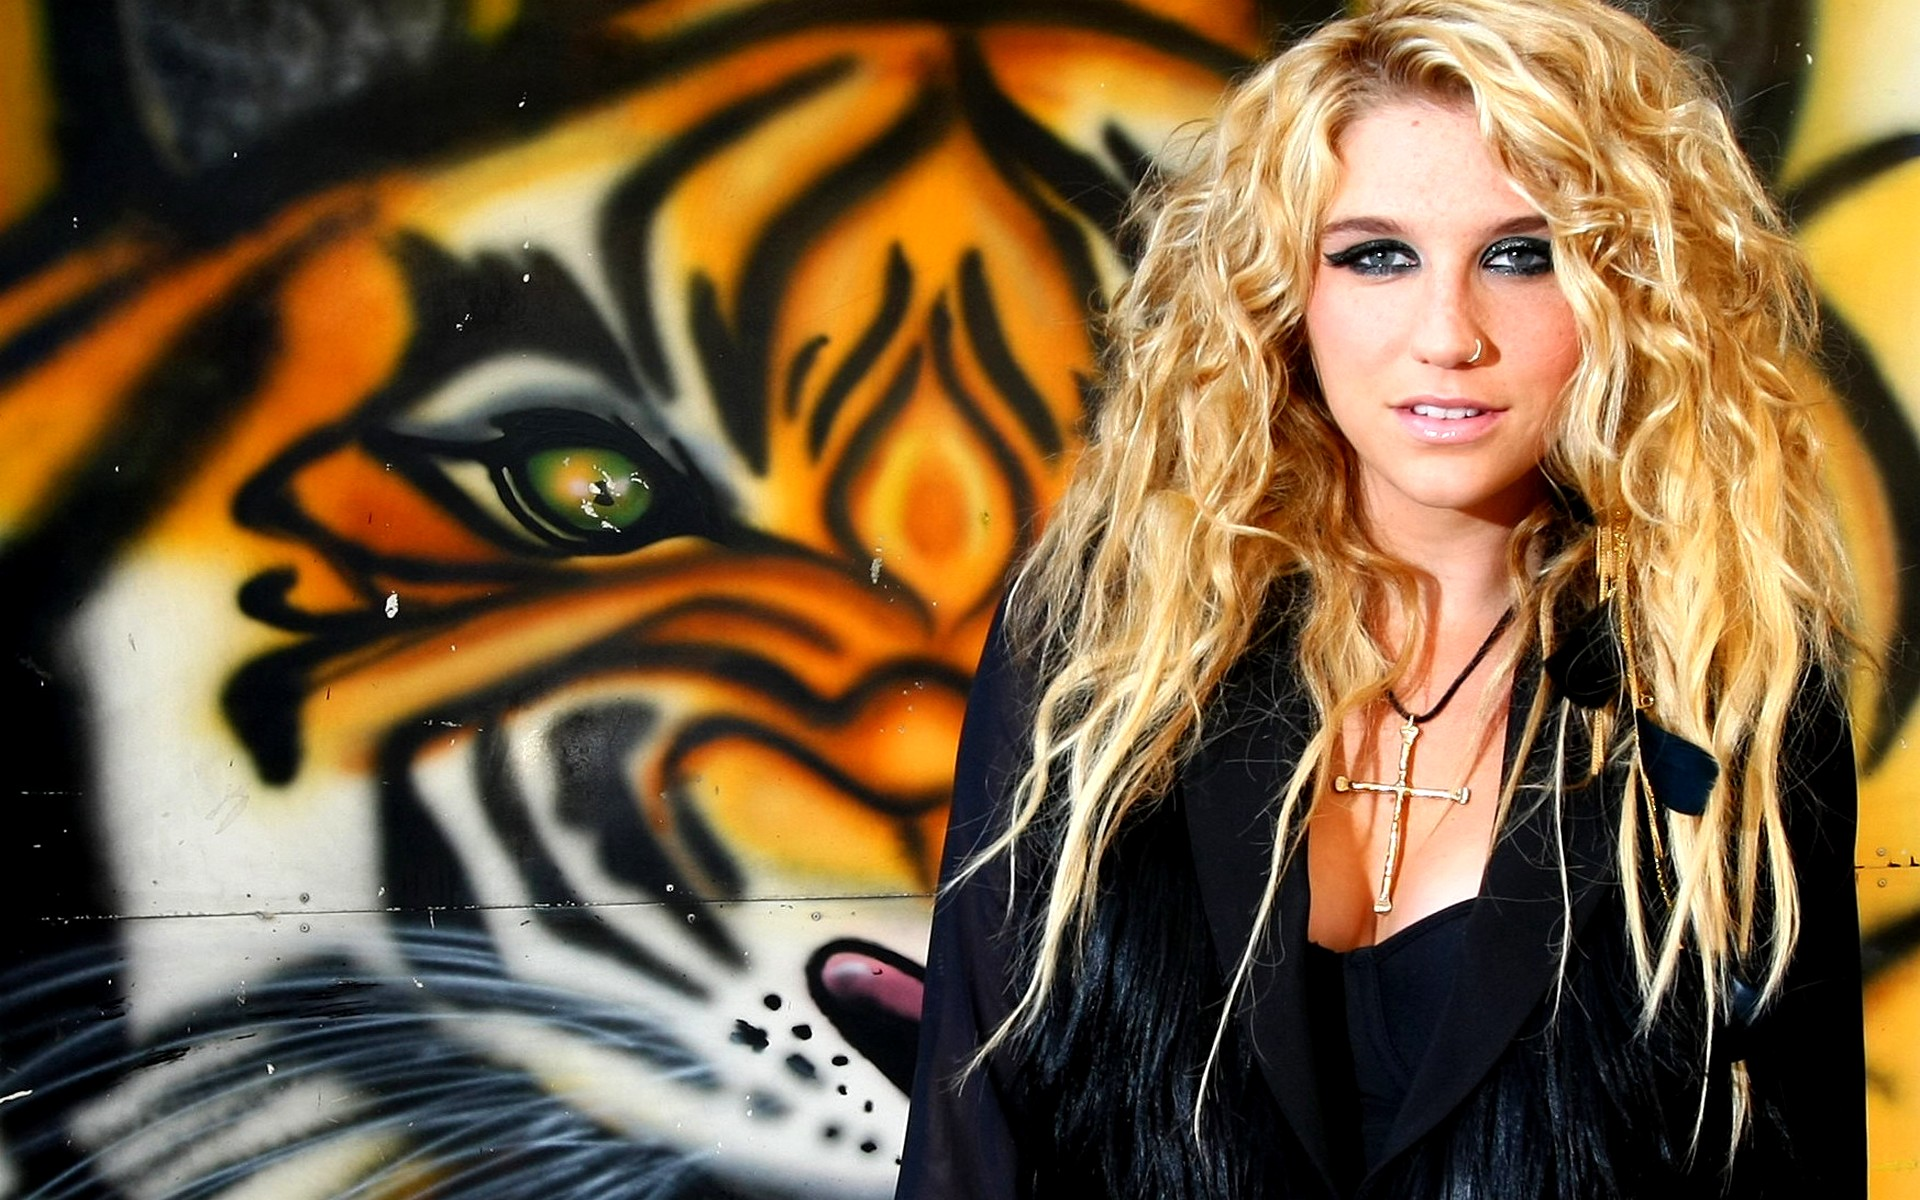 Kesha 2013 Hd Wallpaper High Quality WallpapersWallpaper Desktop 1920x1200